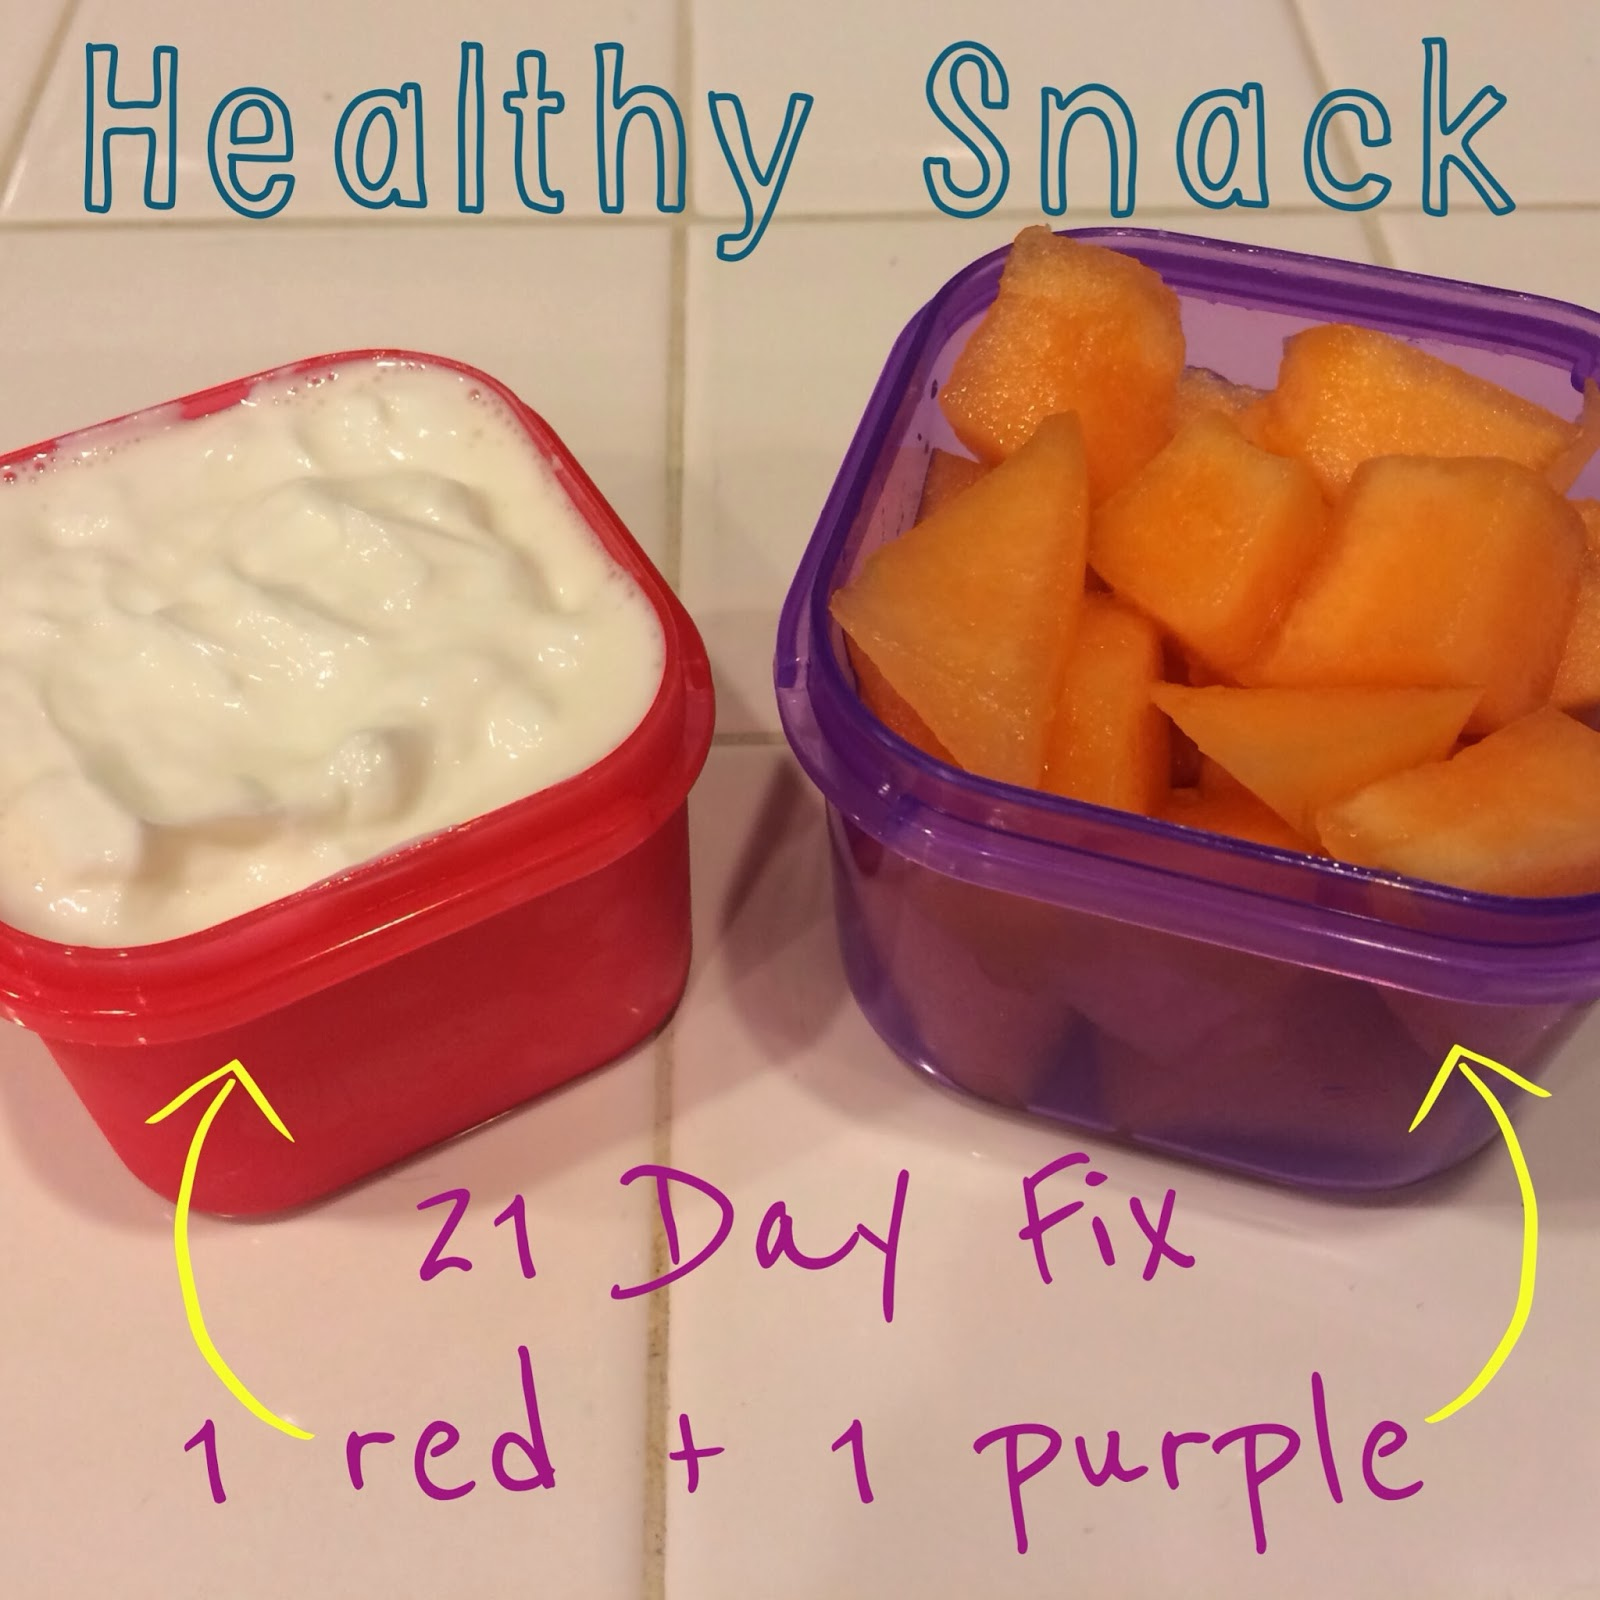 21 Day Fix Snacks, 21 Day Fix Extreme Snacks,